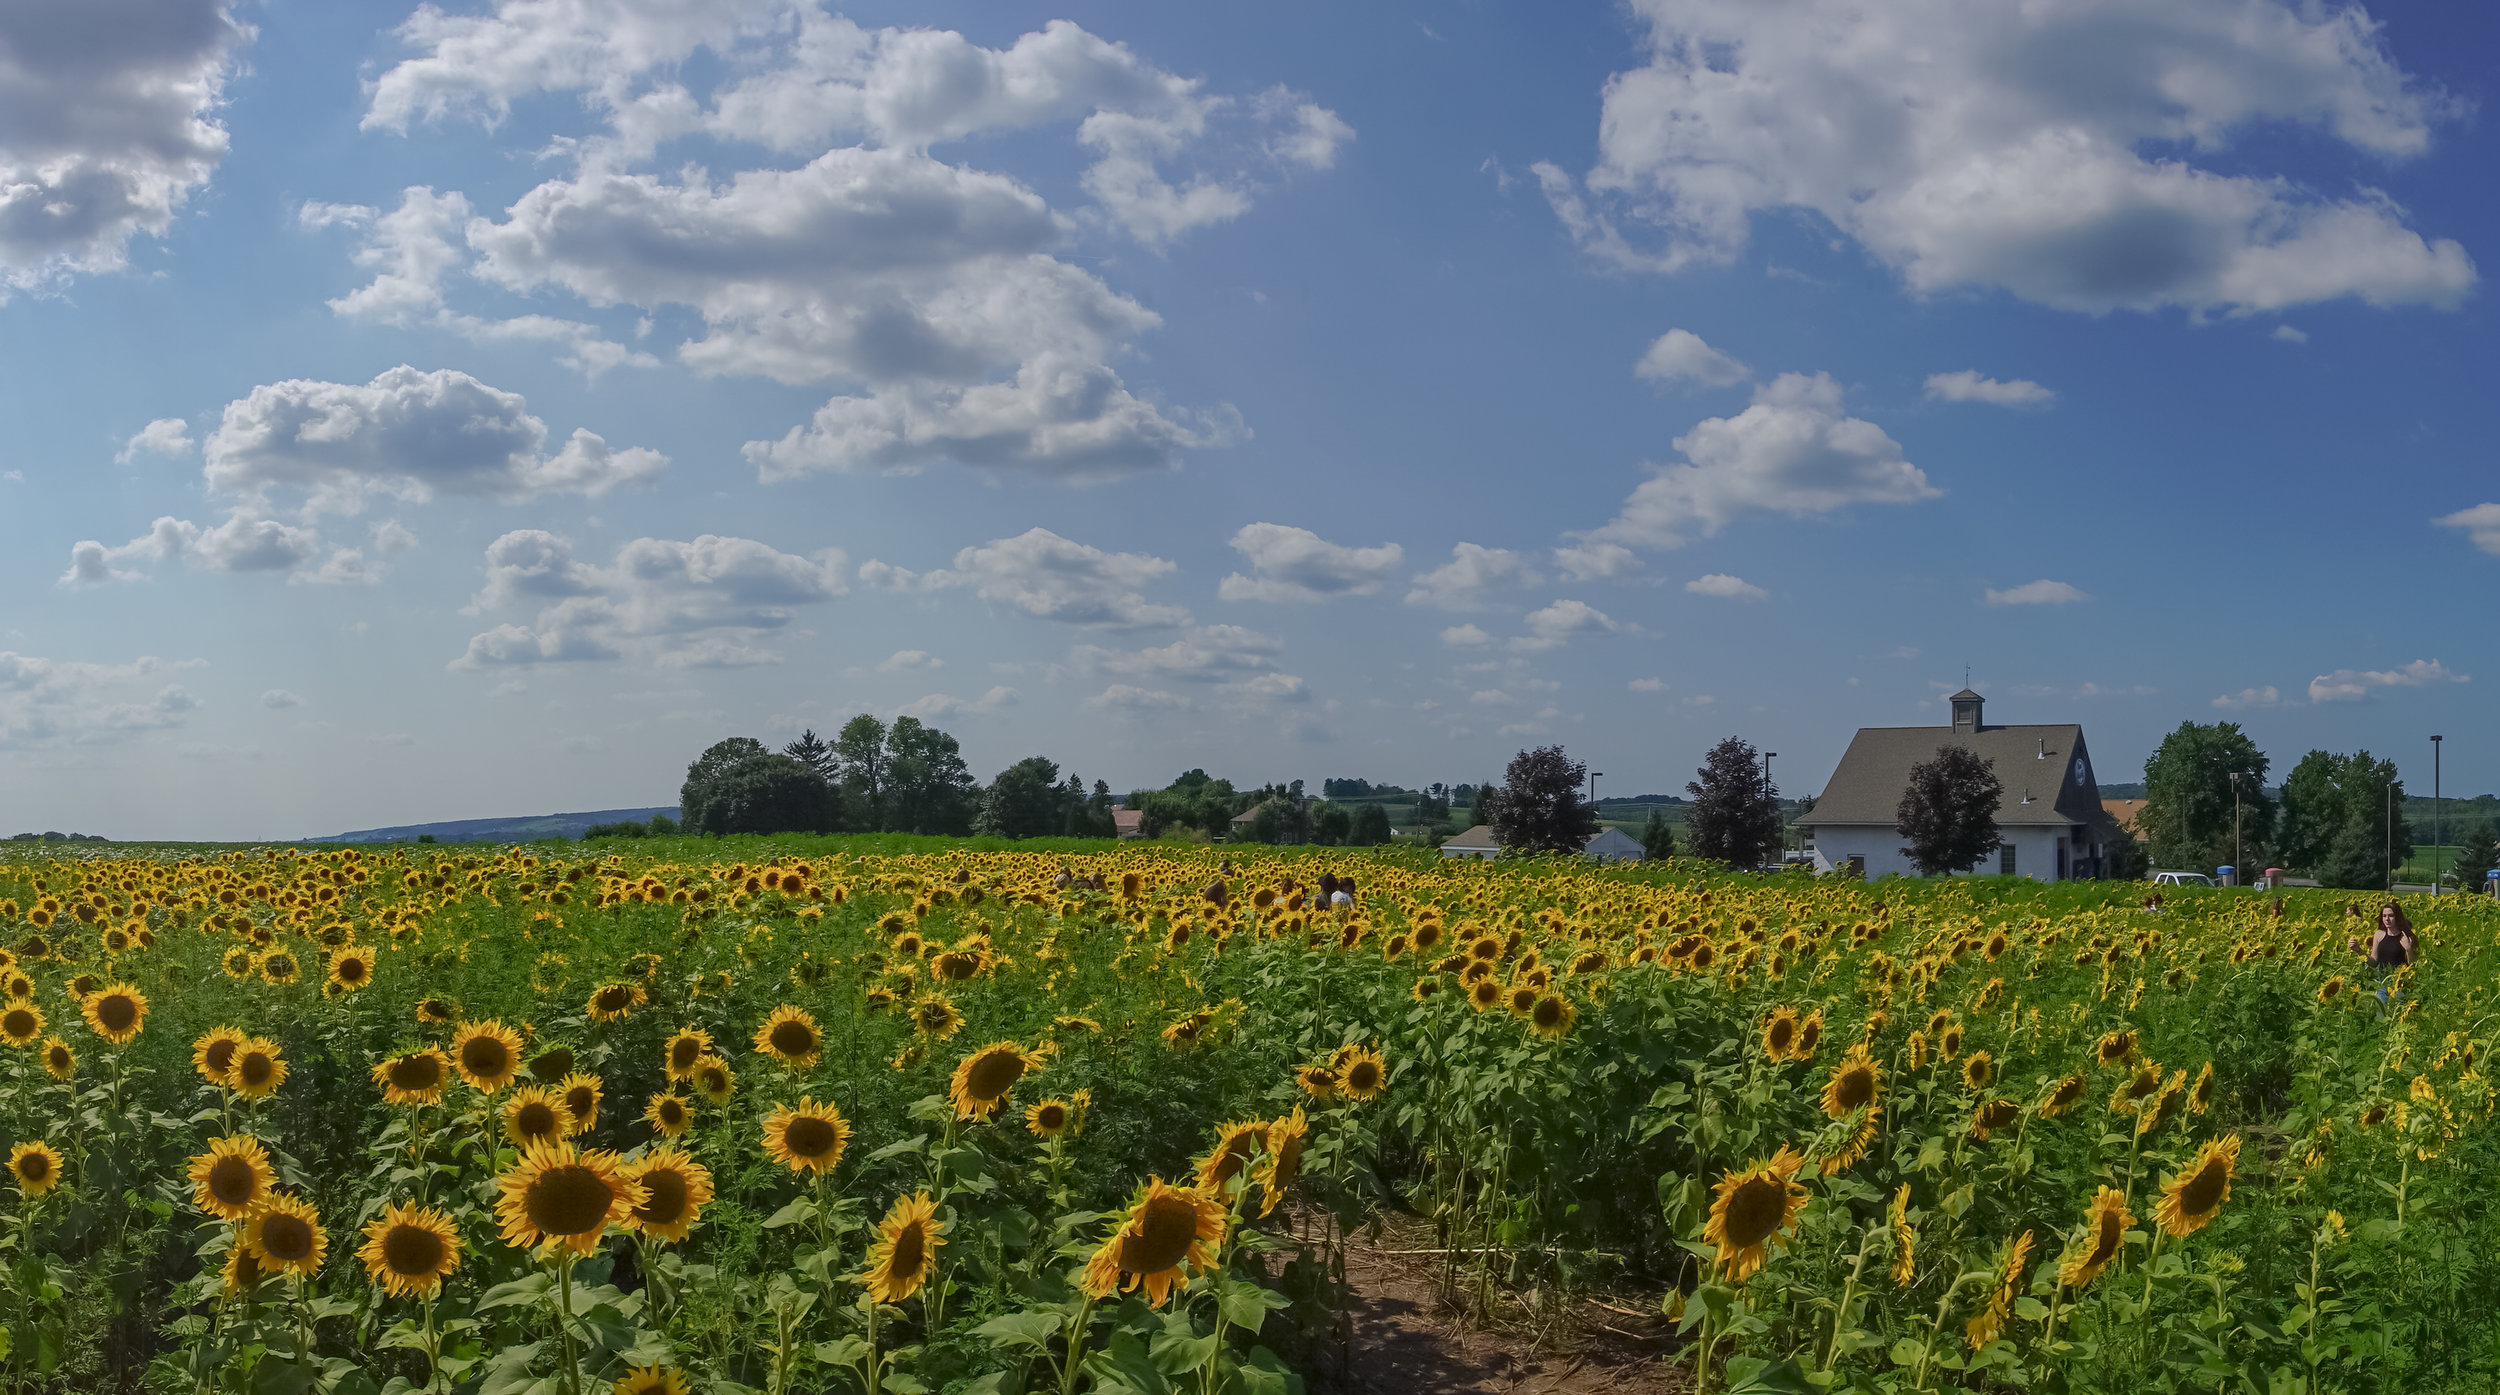 Magical Sunflowers - Discover this magical field of sunflowers every August in Elverson, Pa.